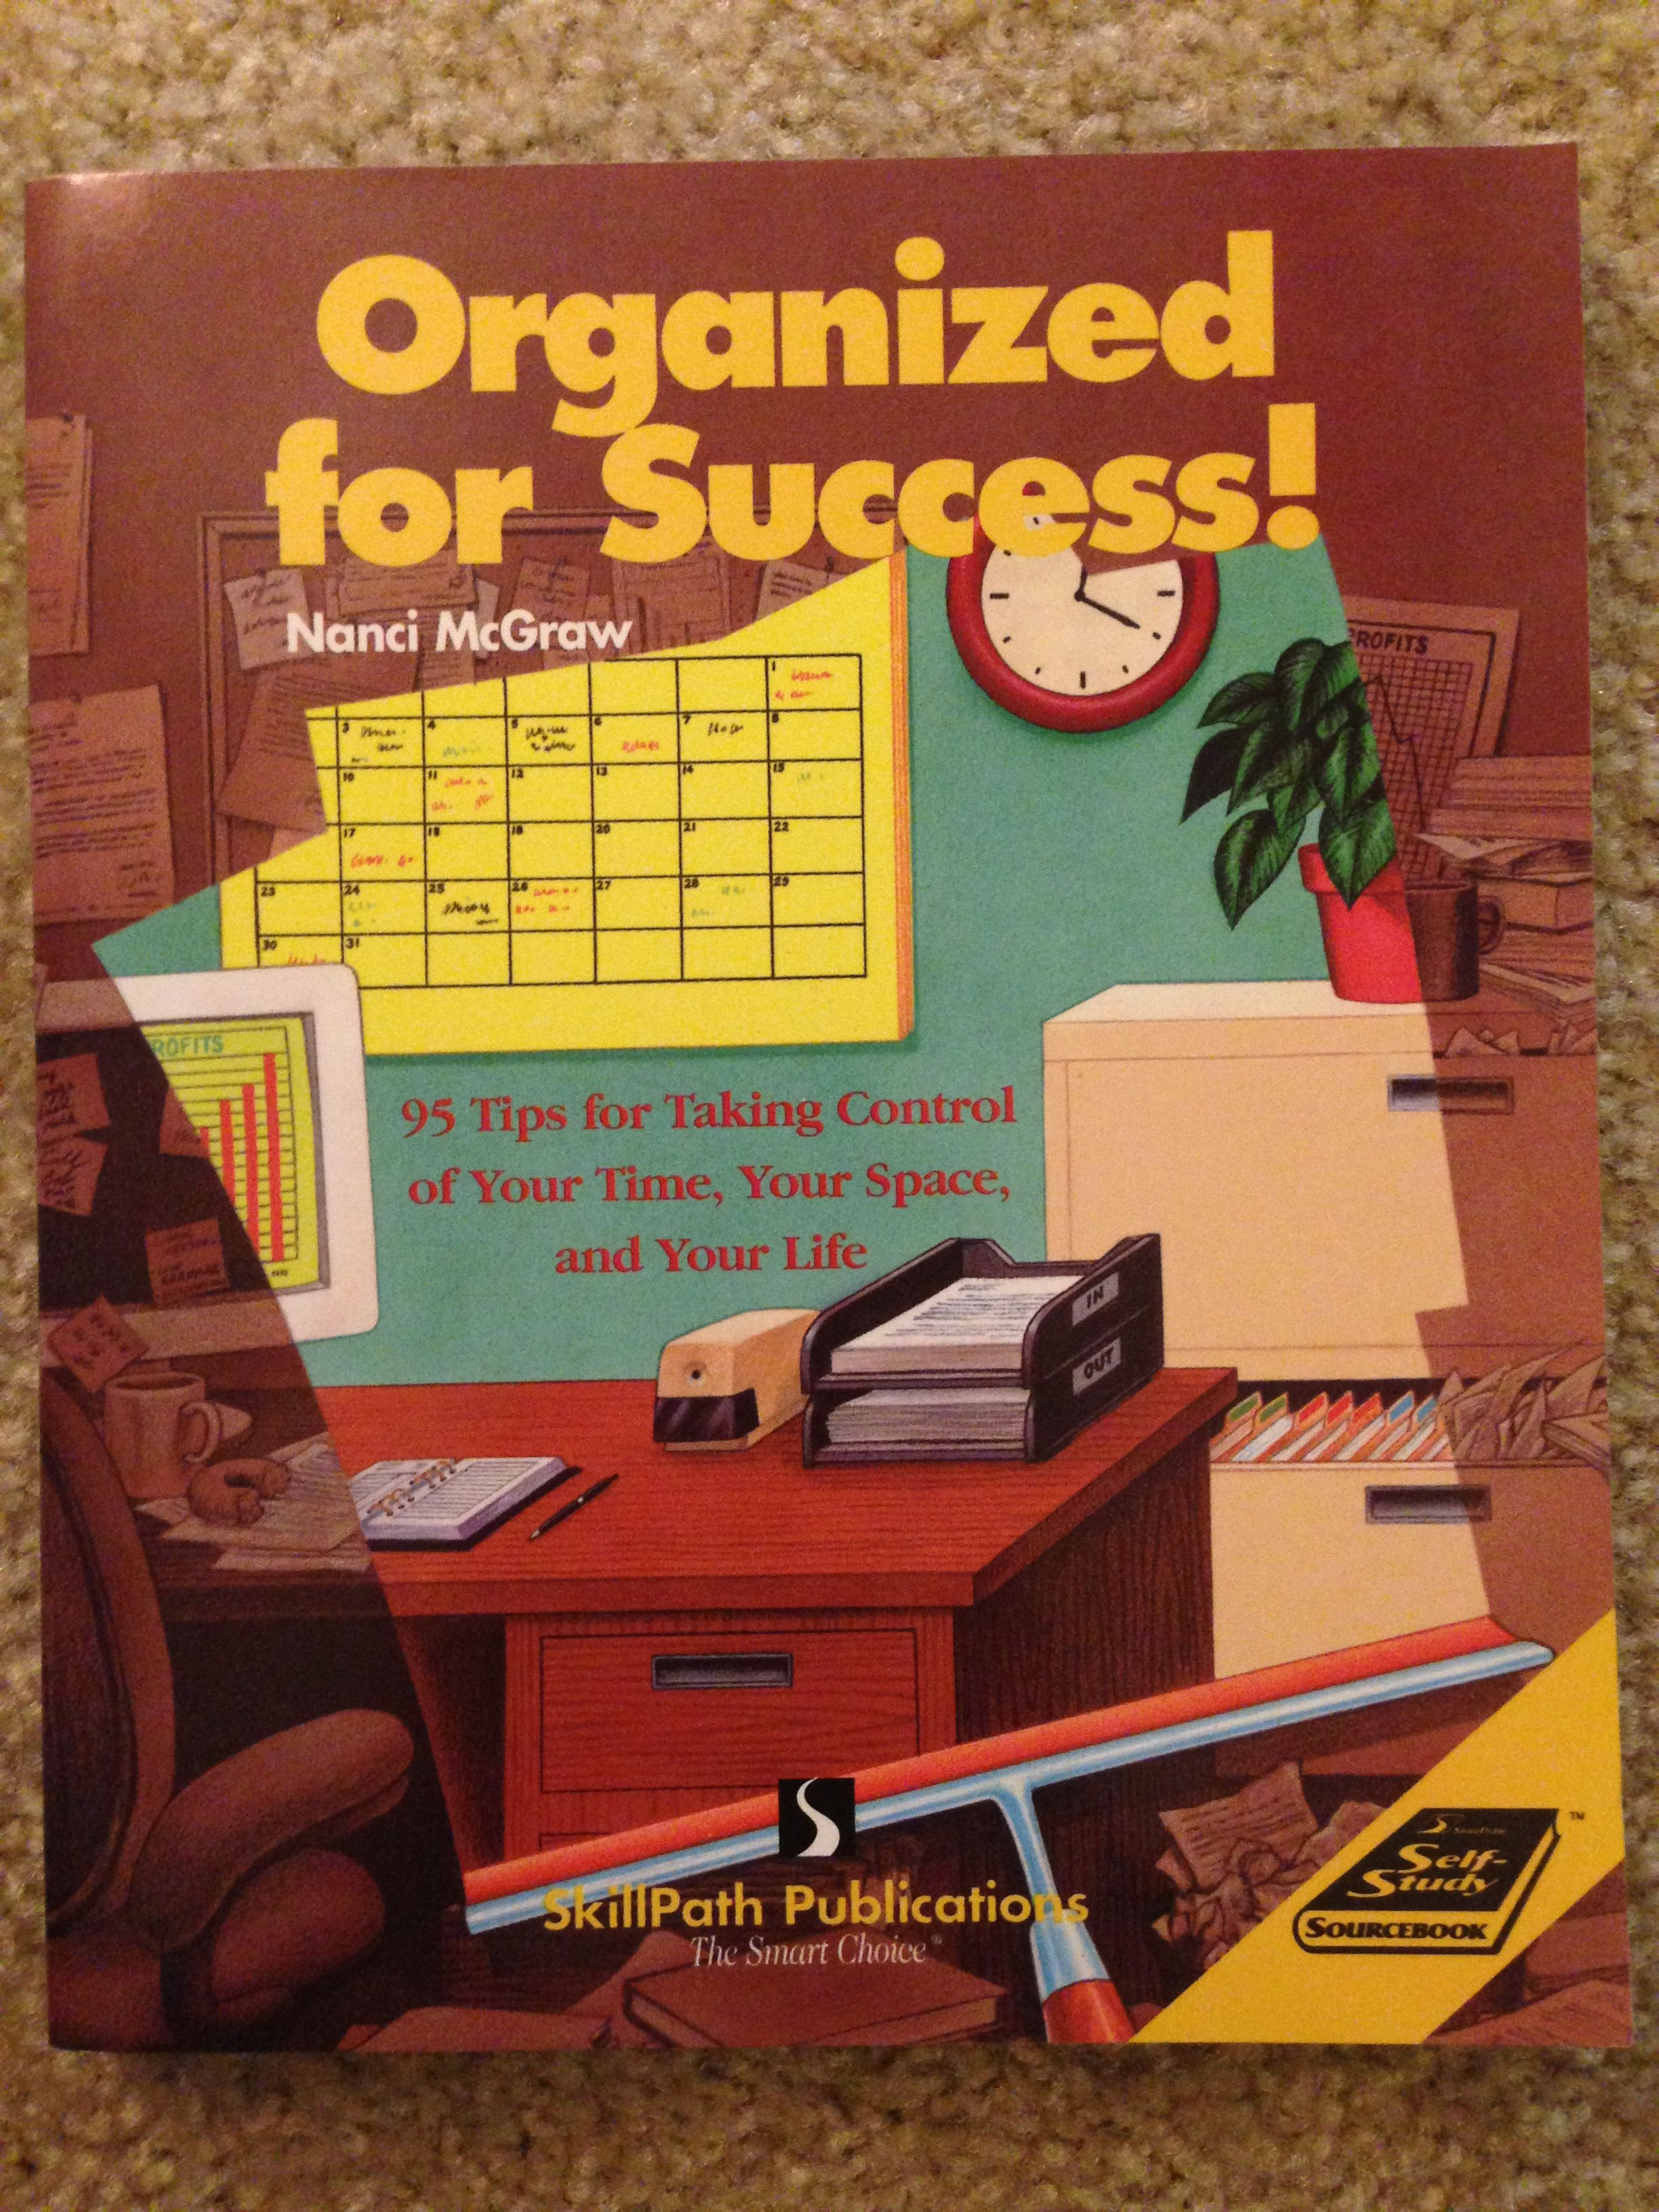 Organized for Success! by Nanci McGraw. Reco'd by Alexis Duffy.